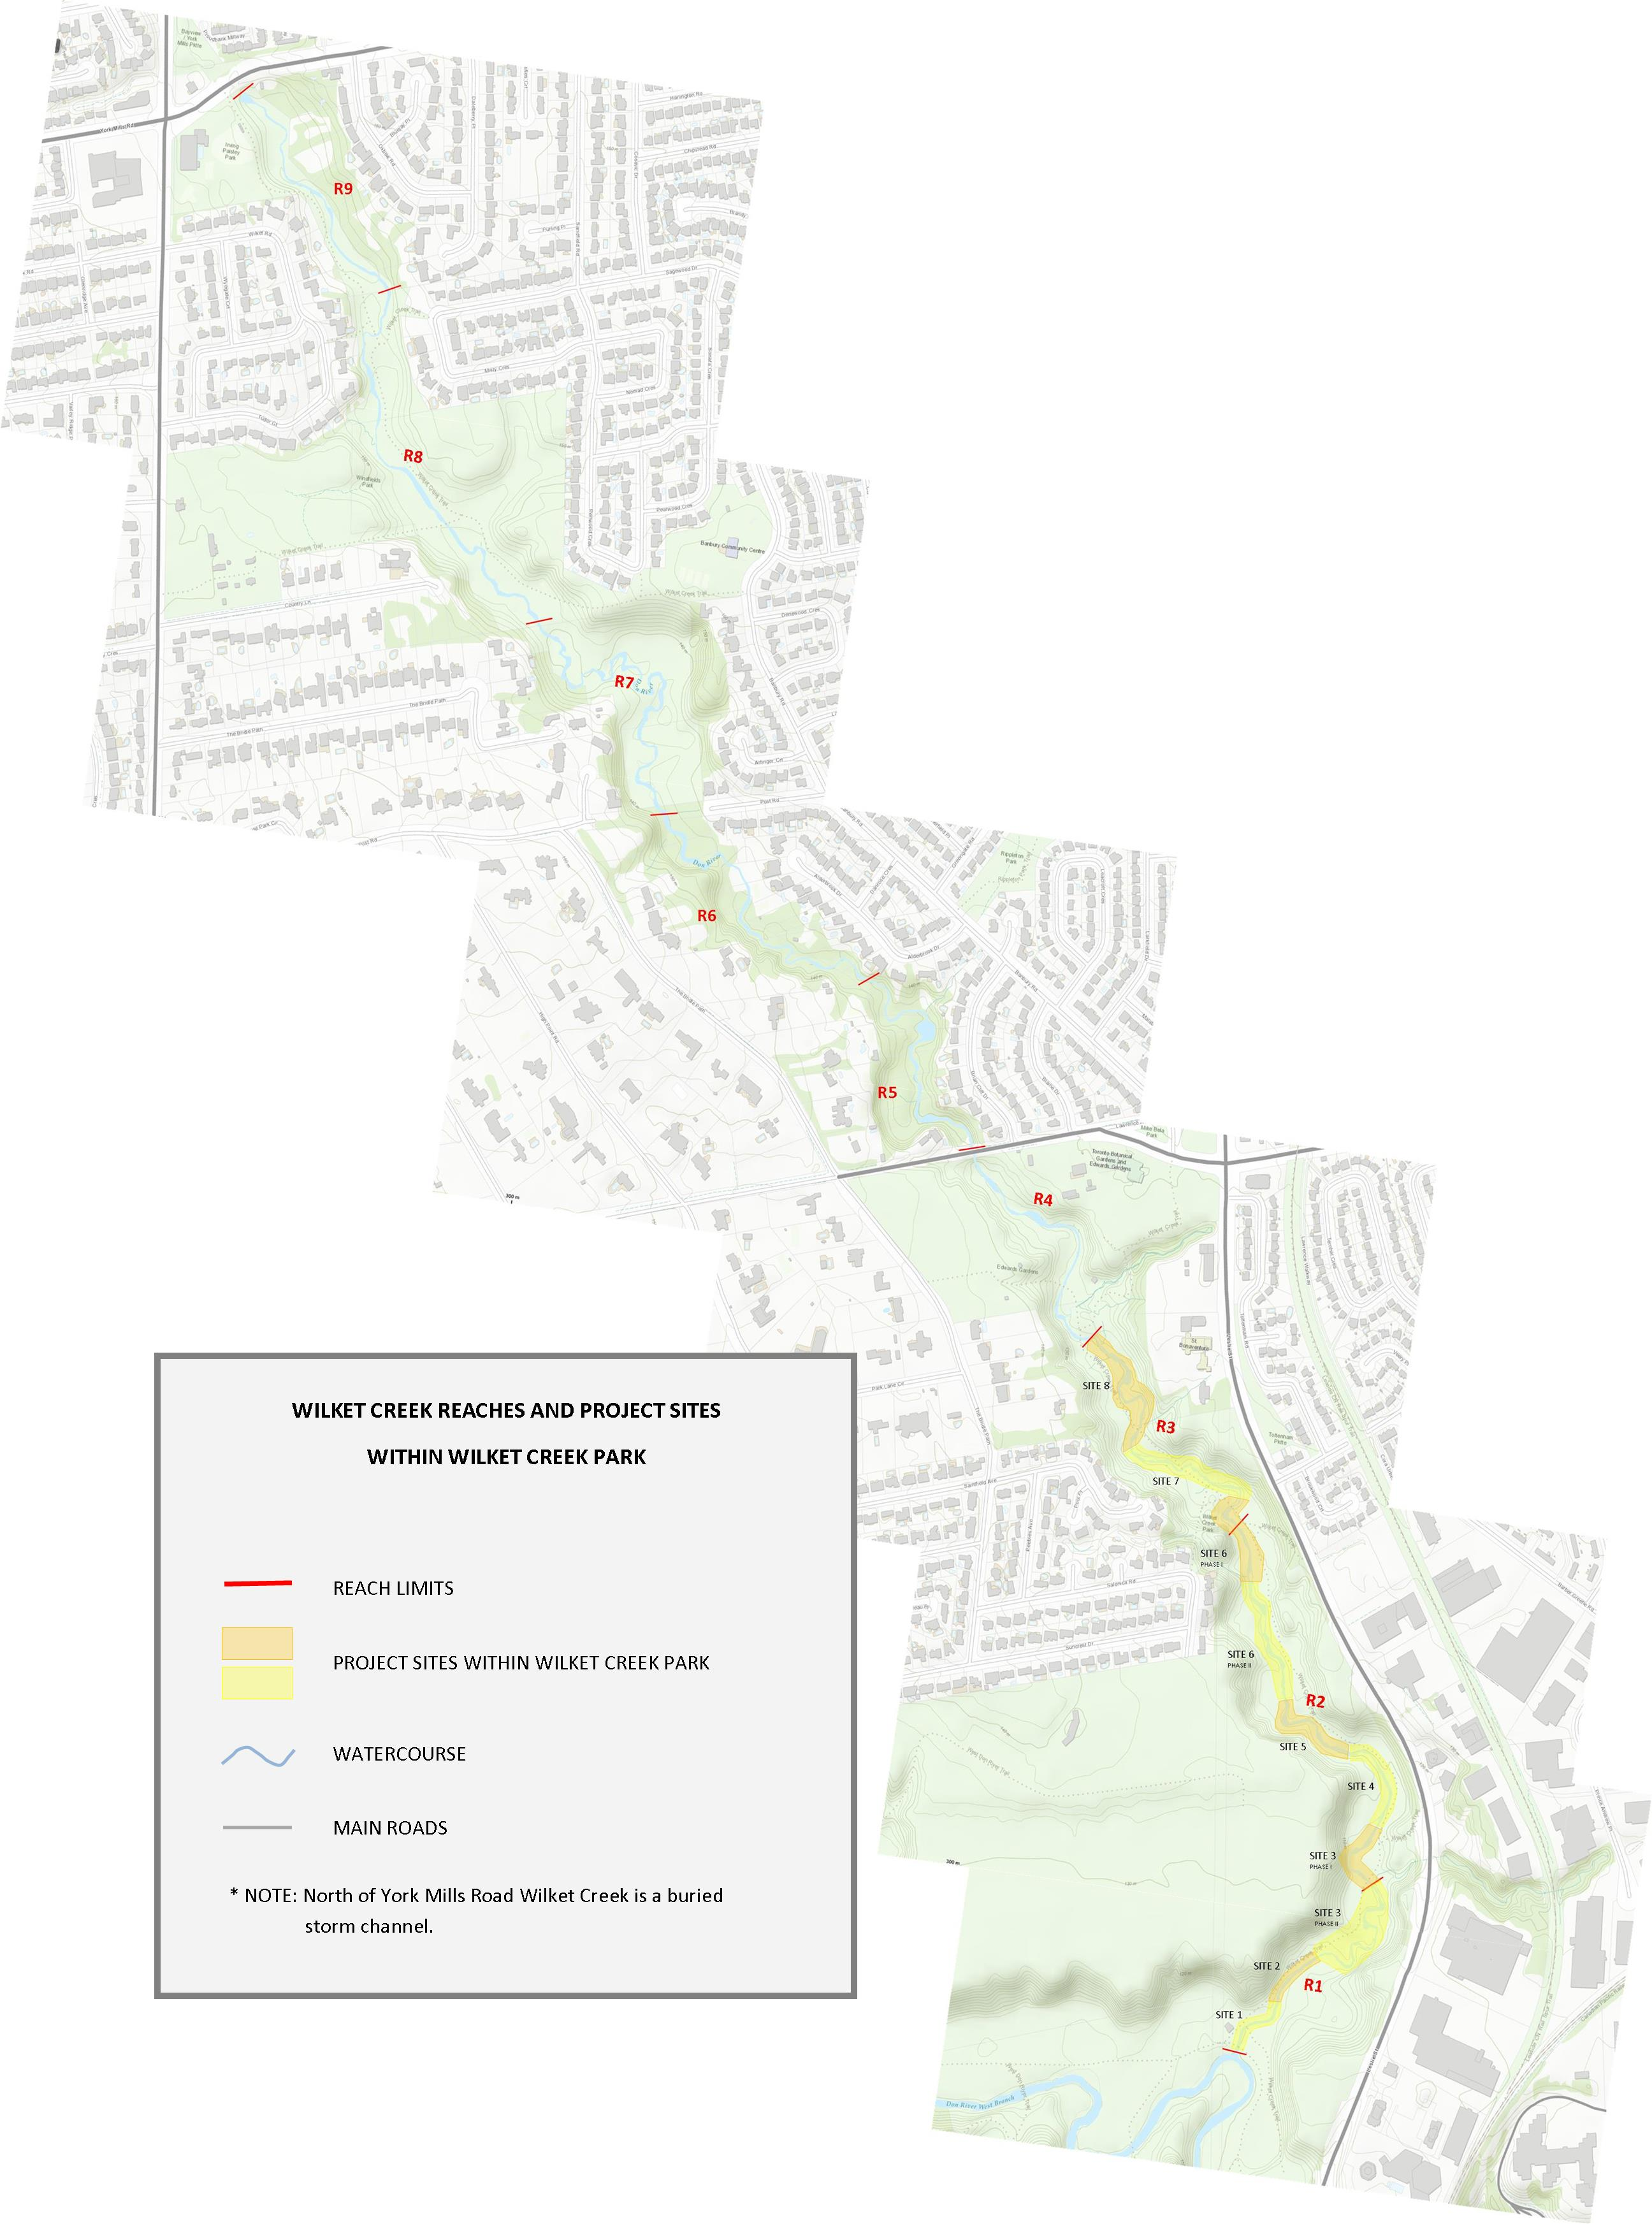 Map of all reaches and sub-project sites within Wilket Creek Park